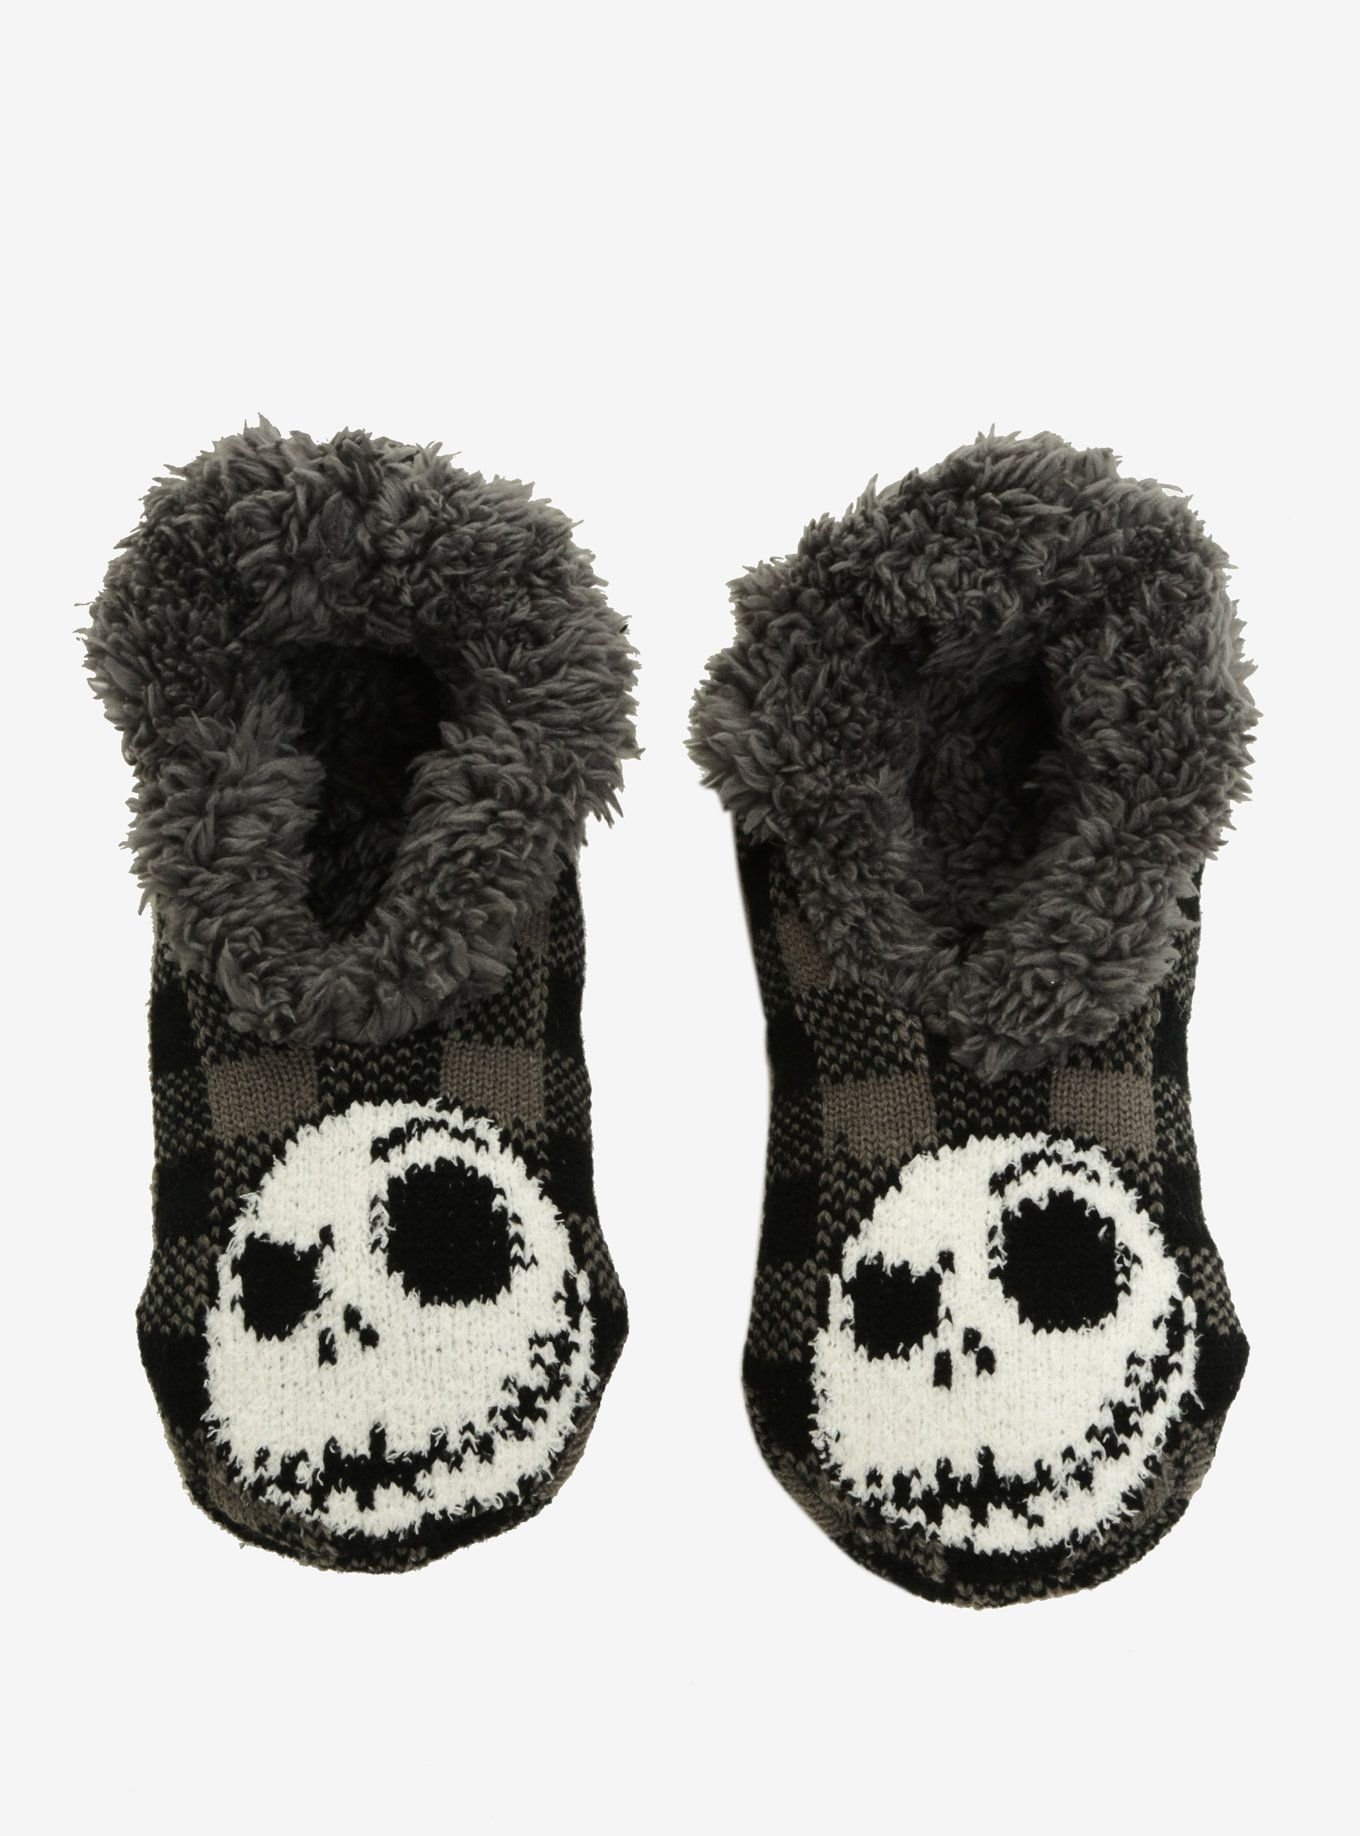 The Nightmare Before Christmas Plaid Cozy Slippers | Tim burton and ...